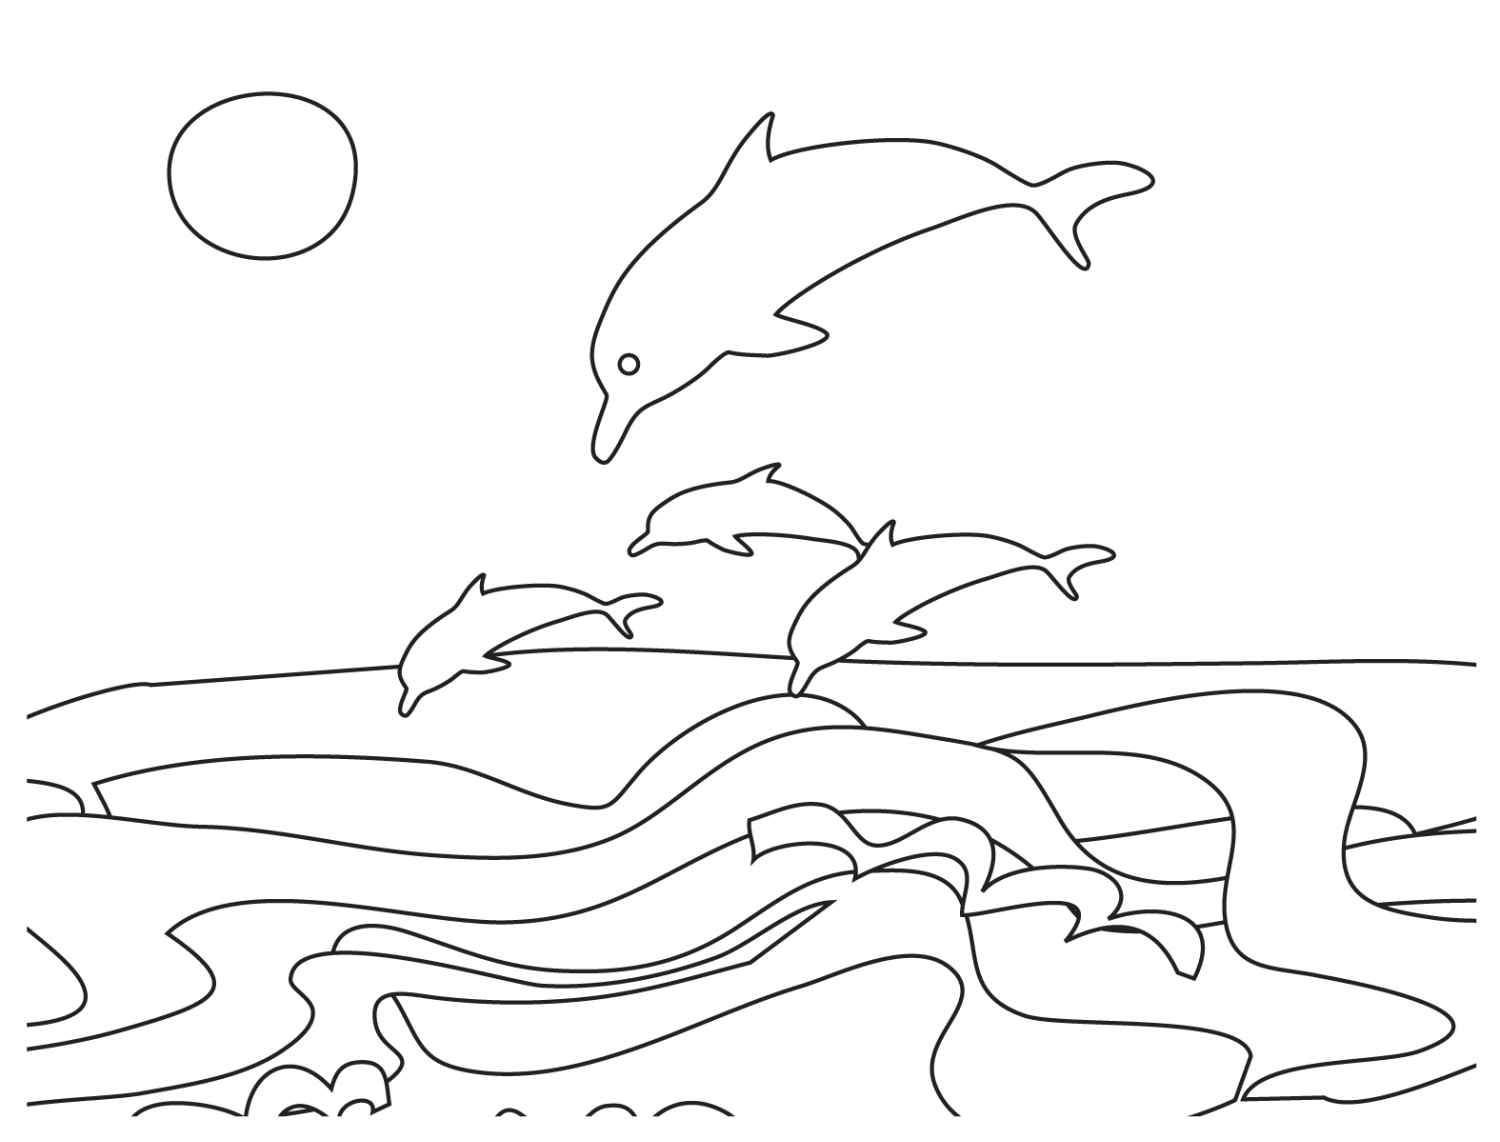 ocean scenes coloring pages - coloring pages of ocean scenes coloring home